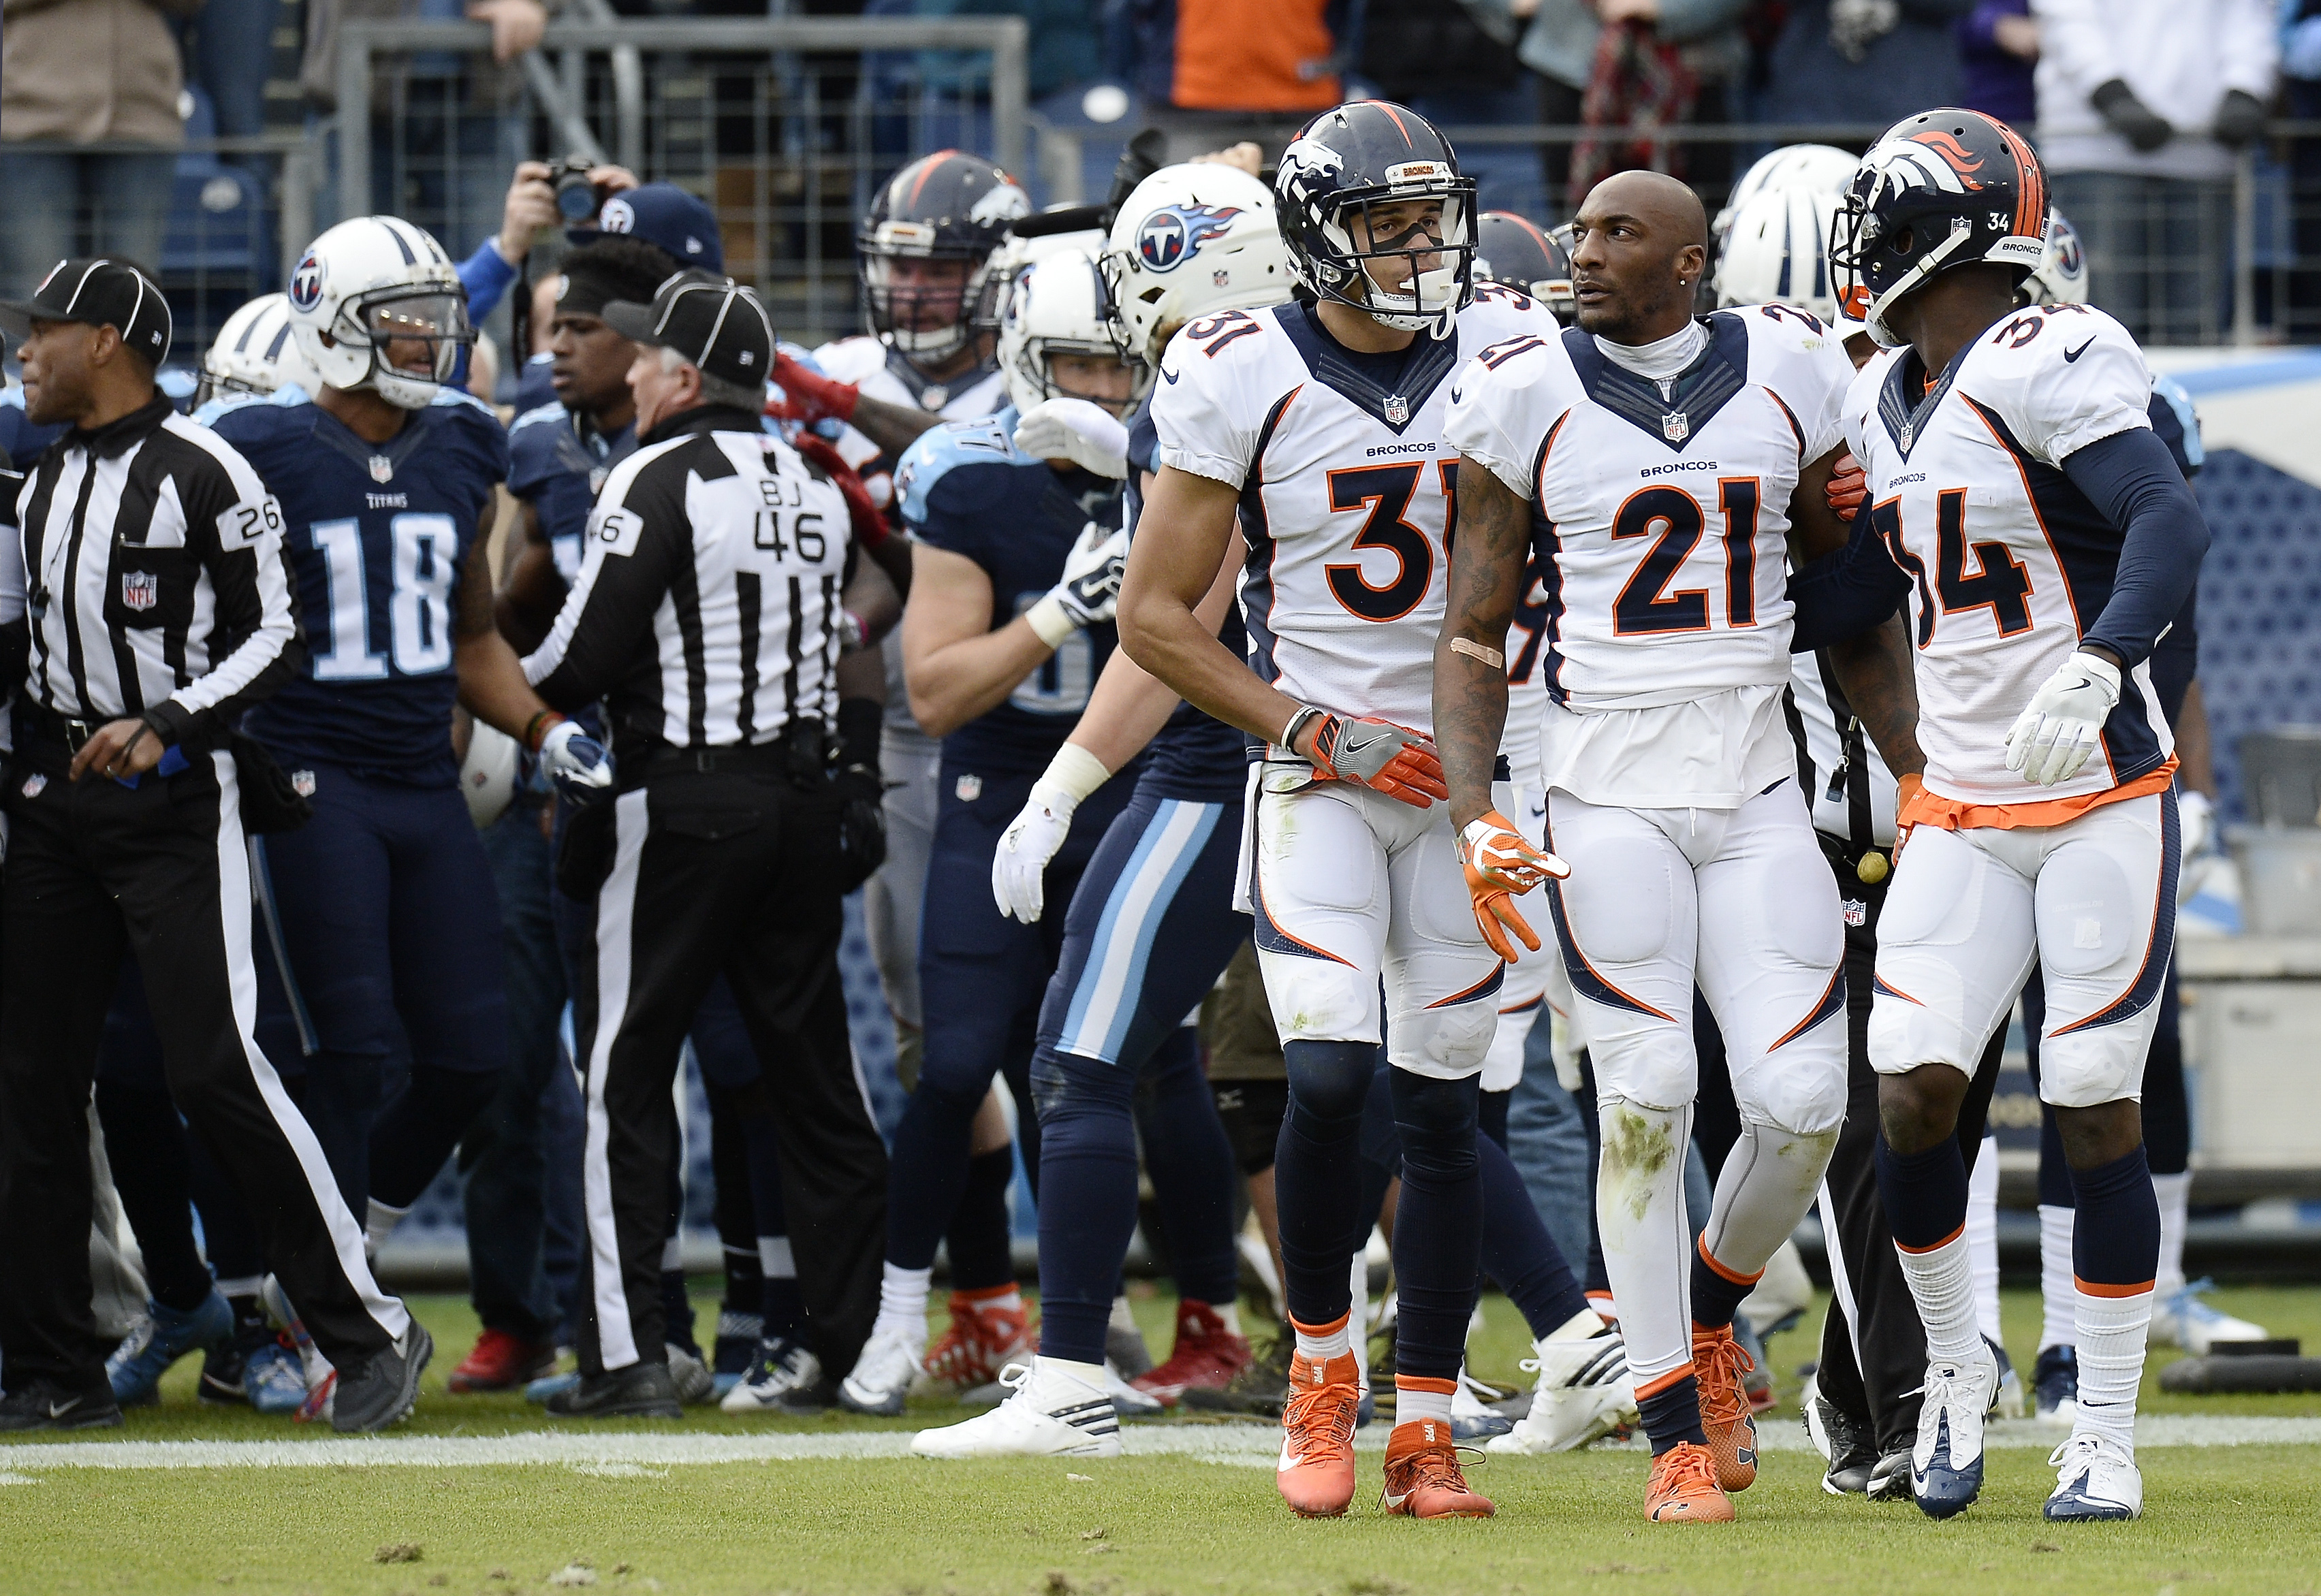 Denver Broncos cornerback Aqib Talib (21) walks to the bench with teammates Will Parks (34) and Justin Simmons (31) after Talib was involved in a scuffle with Tennessee Titans players in the first half of an NFL football game Sunday, Dec. 11, 2016, in Nas